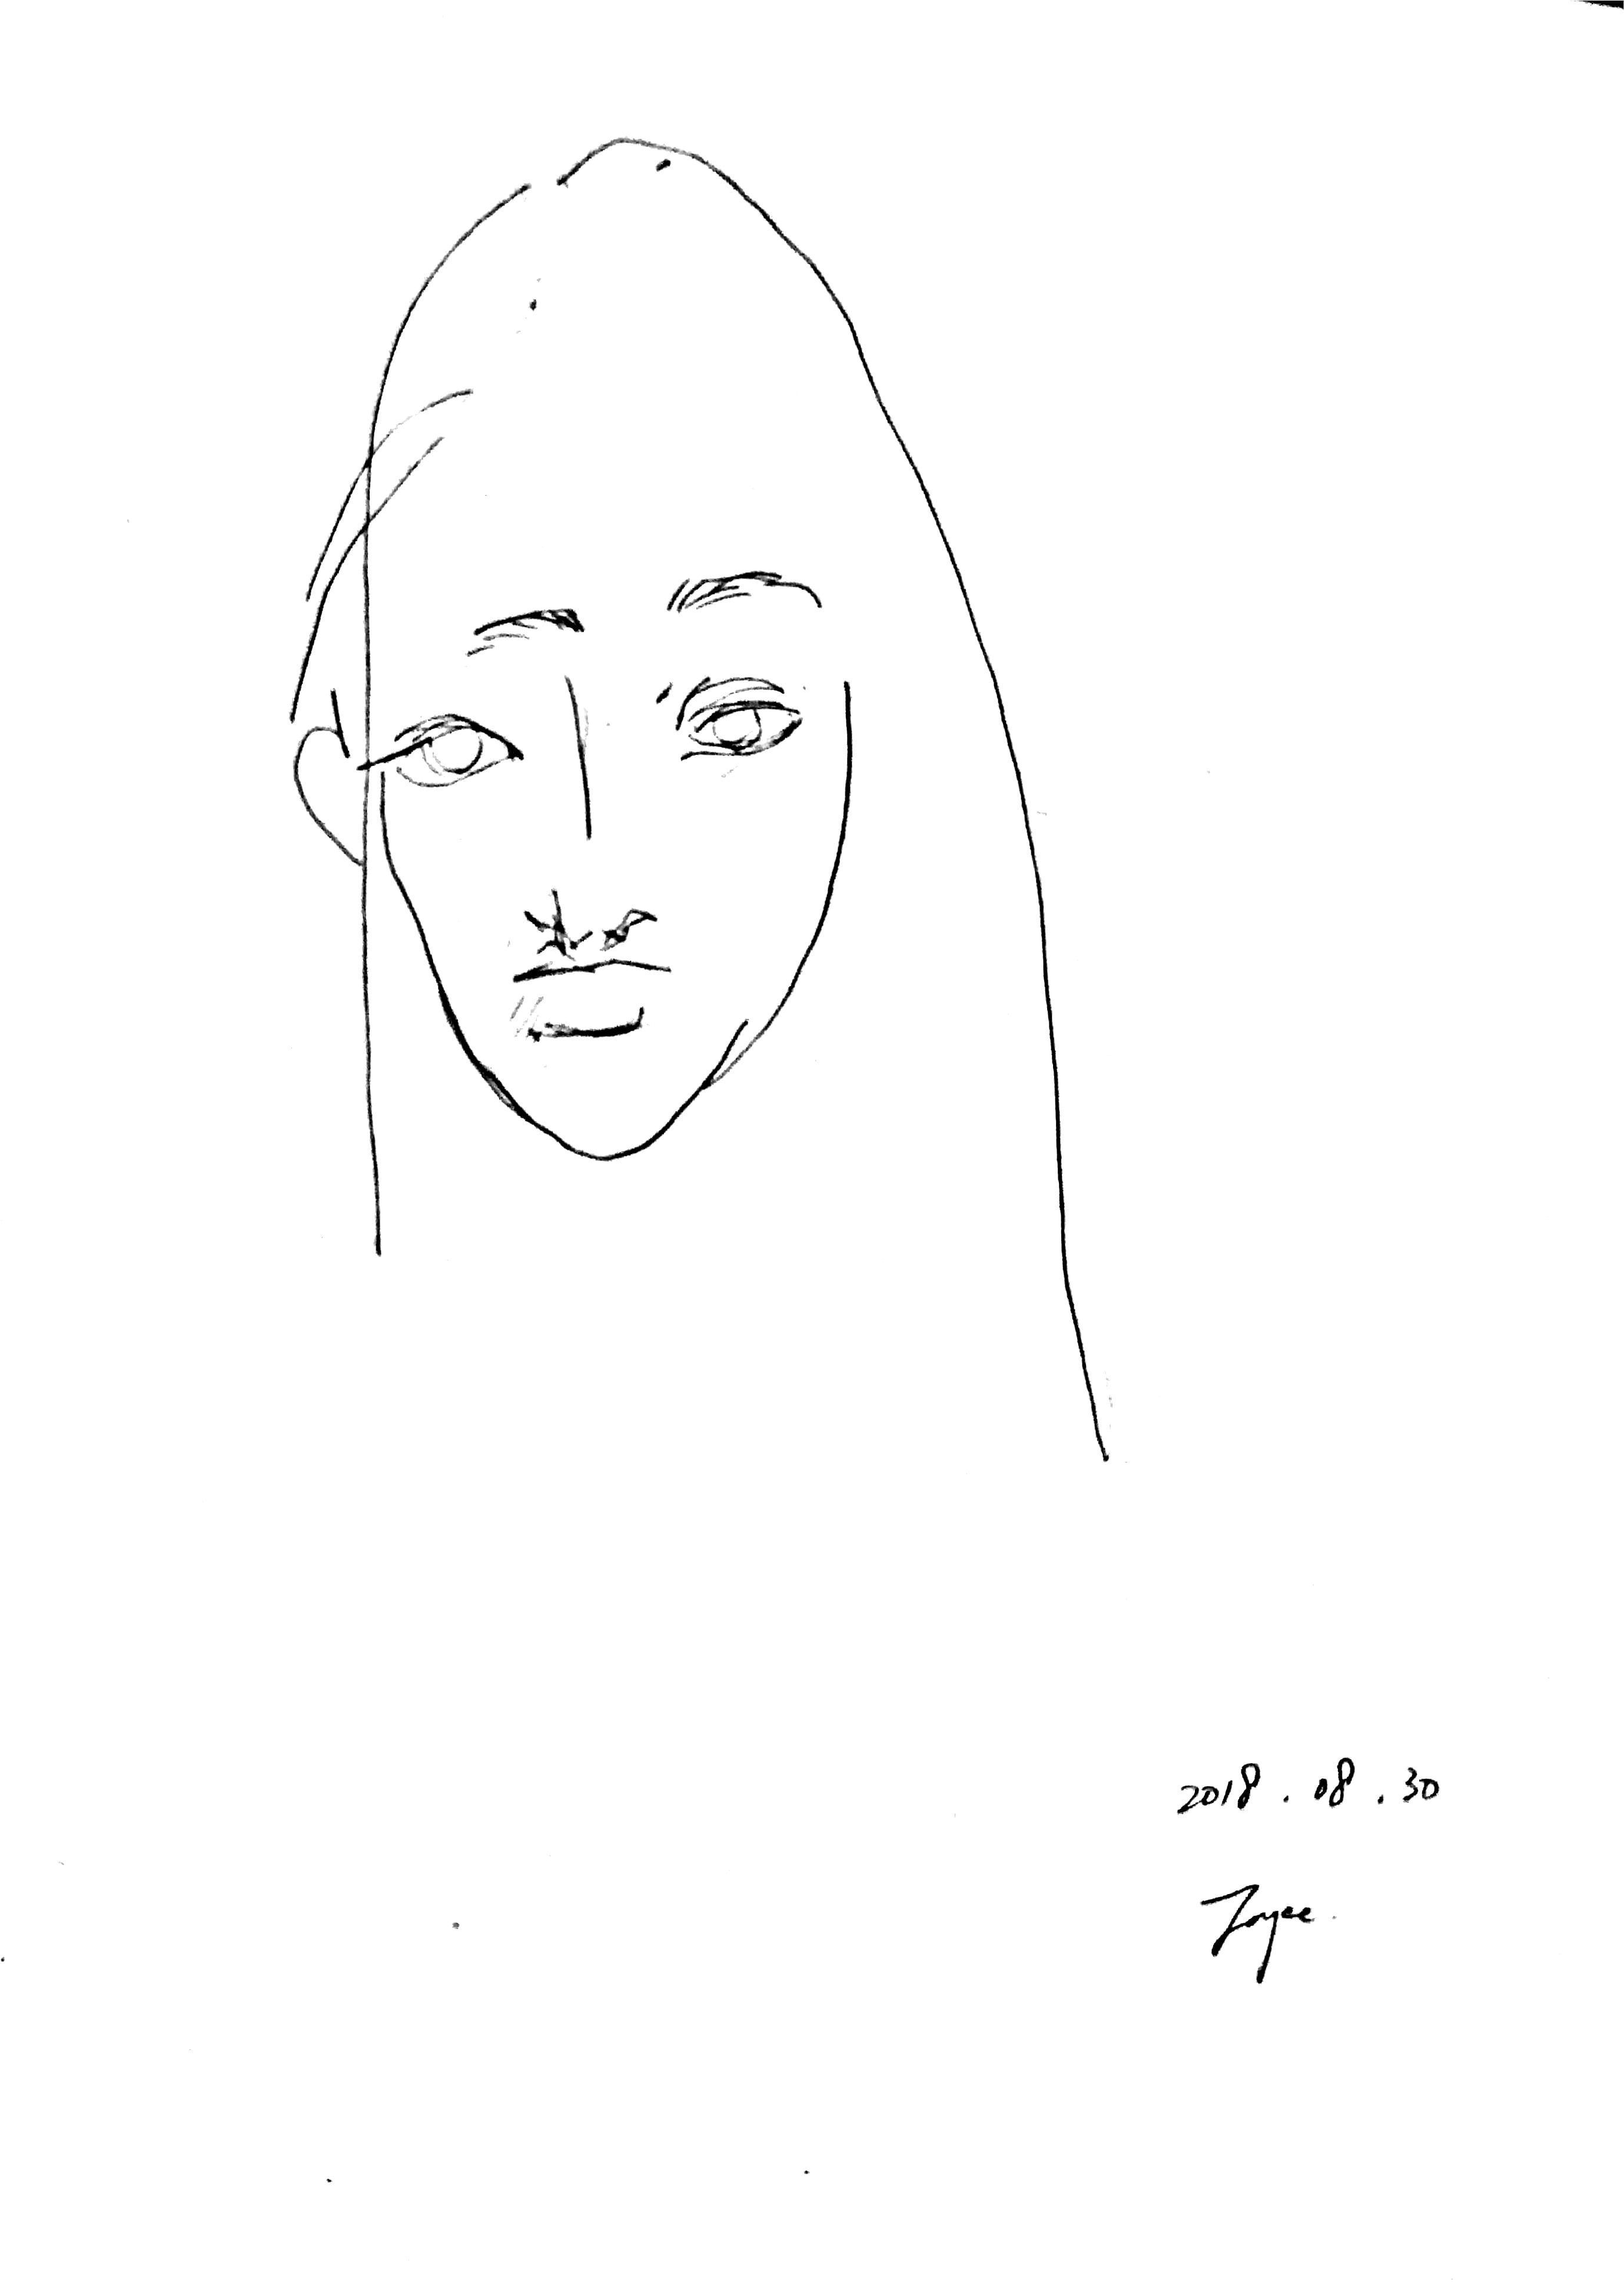 Self as Blind Contour Drawing 08.30.2018